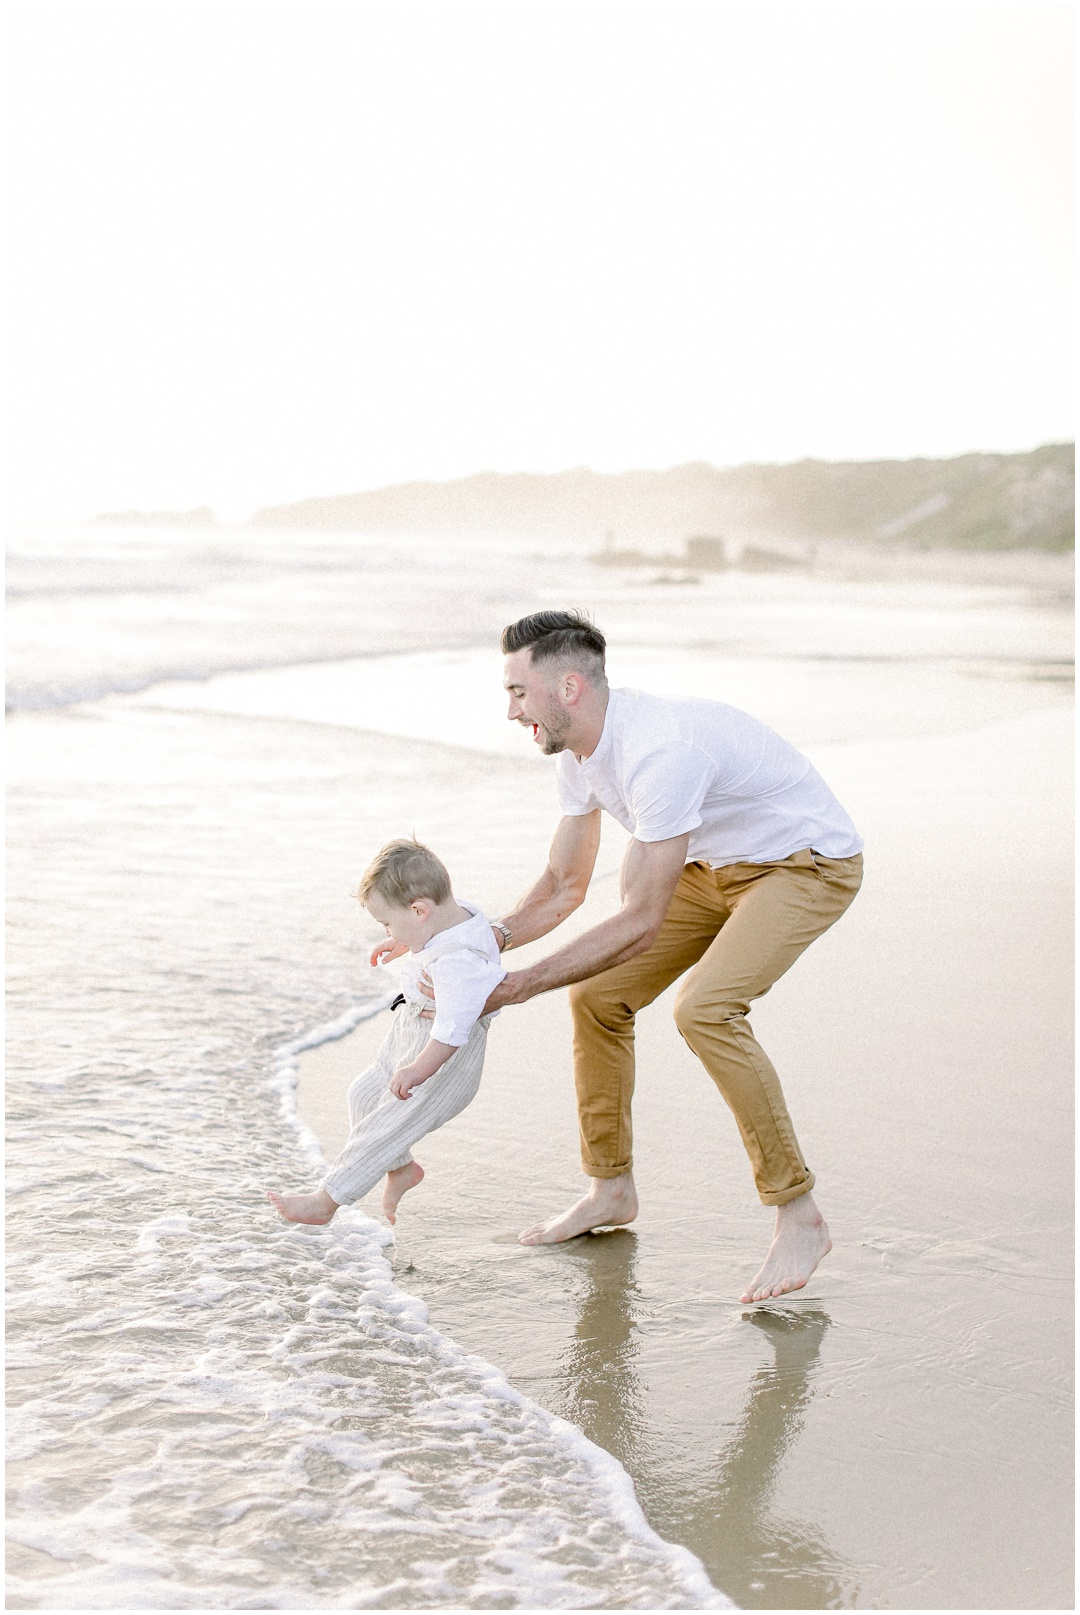 Newport_Beach_Newborn_Light_Airy_Natural_Photographer_Newport_Beach_Photographer_Orange_County_Family_Photographer_Cori_Kleckner_Photography_Huntington_Beach_Photographer_Family_OC_Newborn_Danielle_Lawley_Parker_Maternity_Family_Jordan_Lawley_3370.jpg